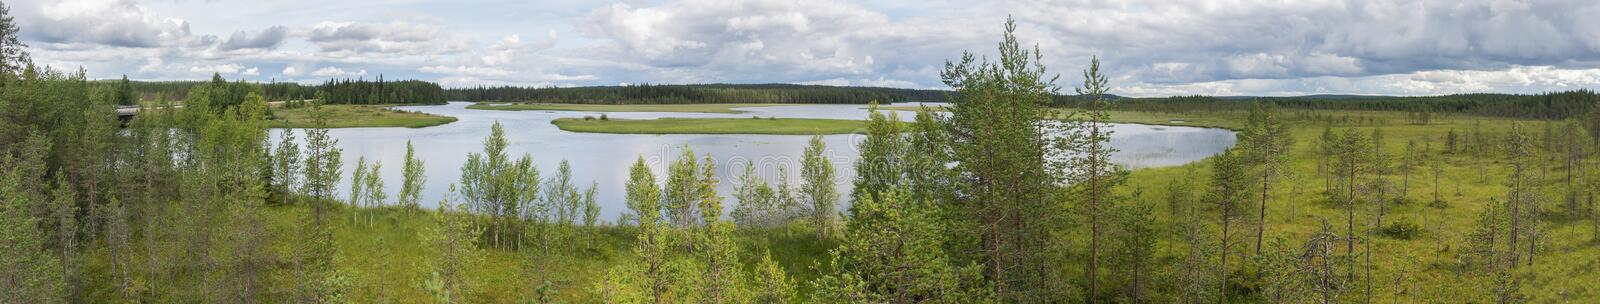 Characteristic landscape of the tundra, lake and vegetation, Fin. Typical landscape of the tundra, lake and vegetation, Finland stock photo